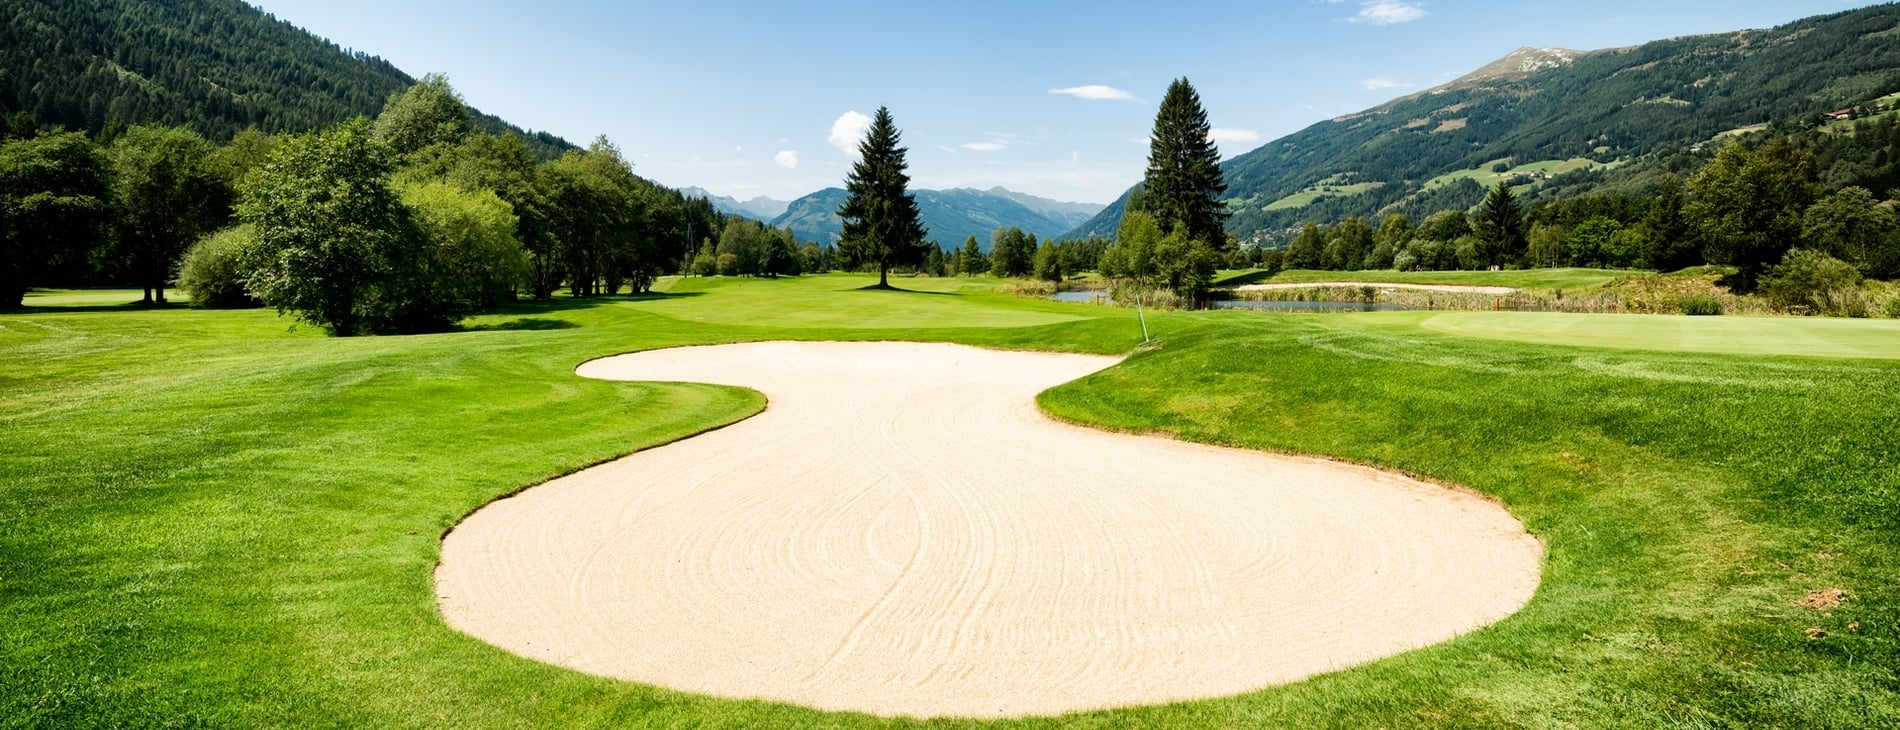 Your Golfing Hotel in Austria